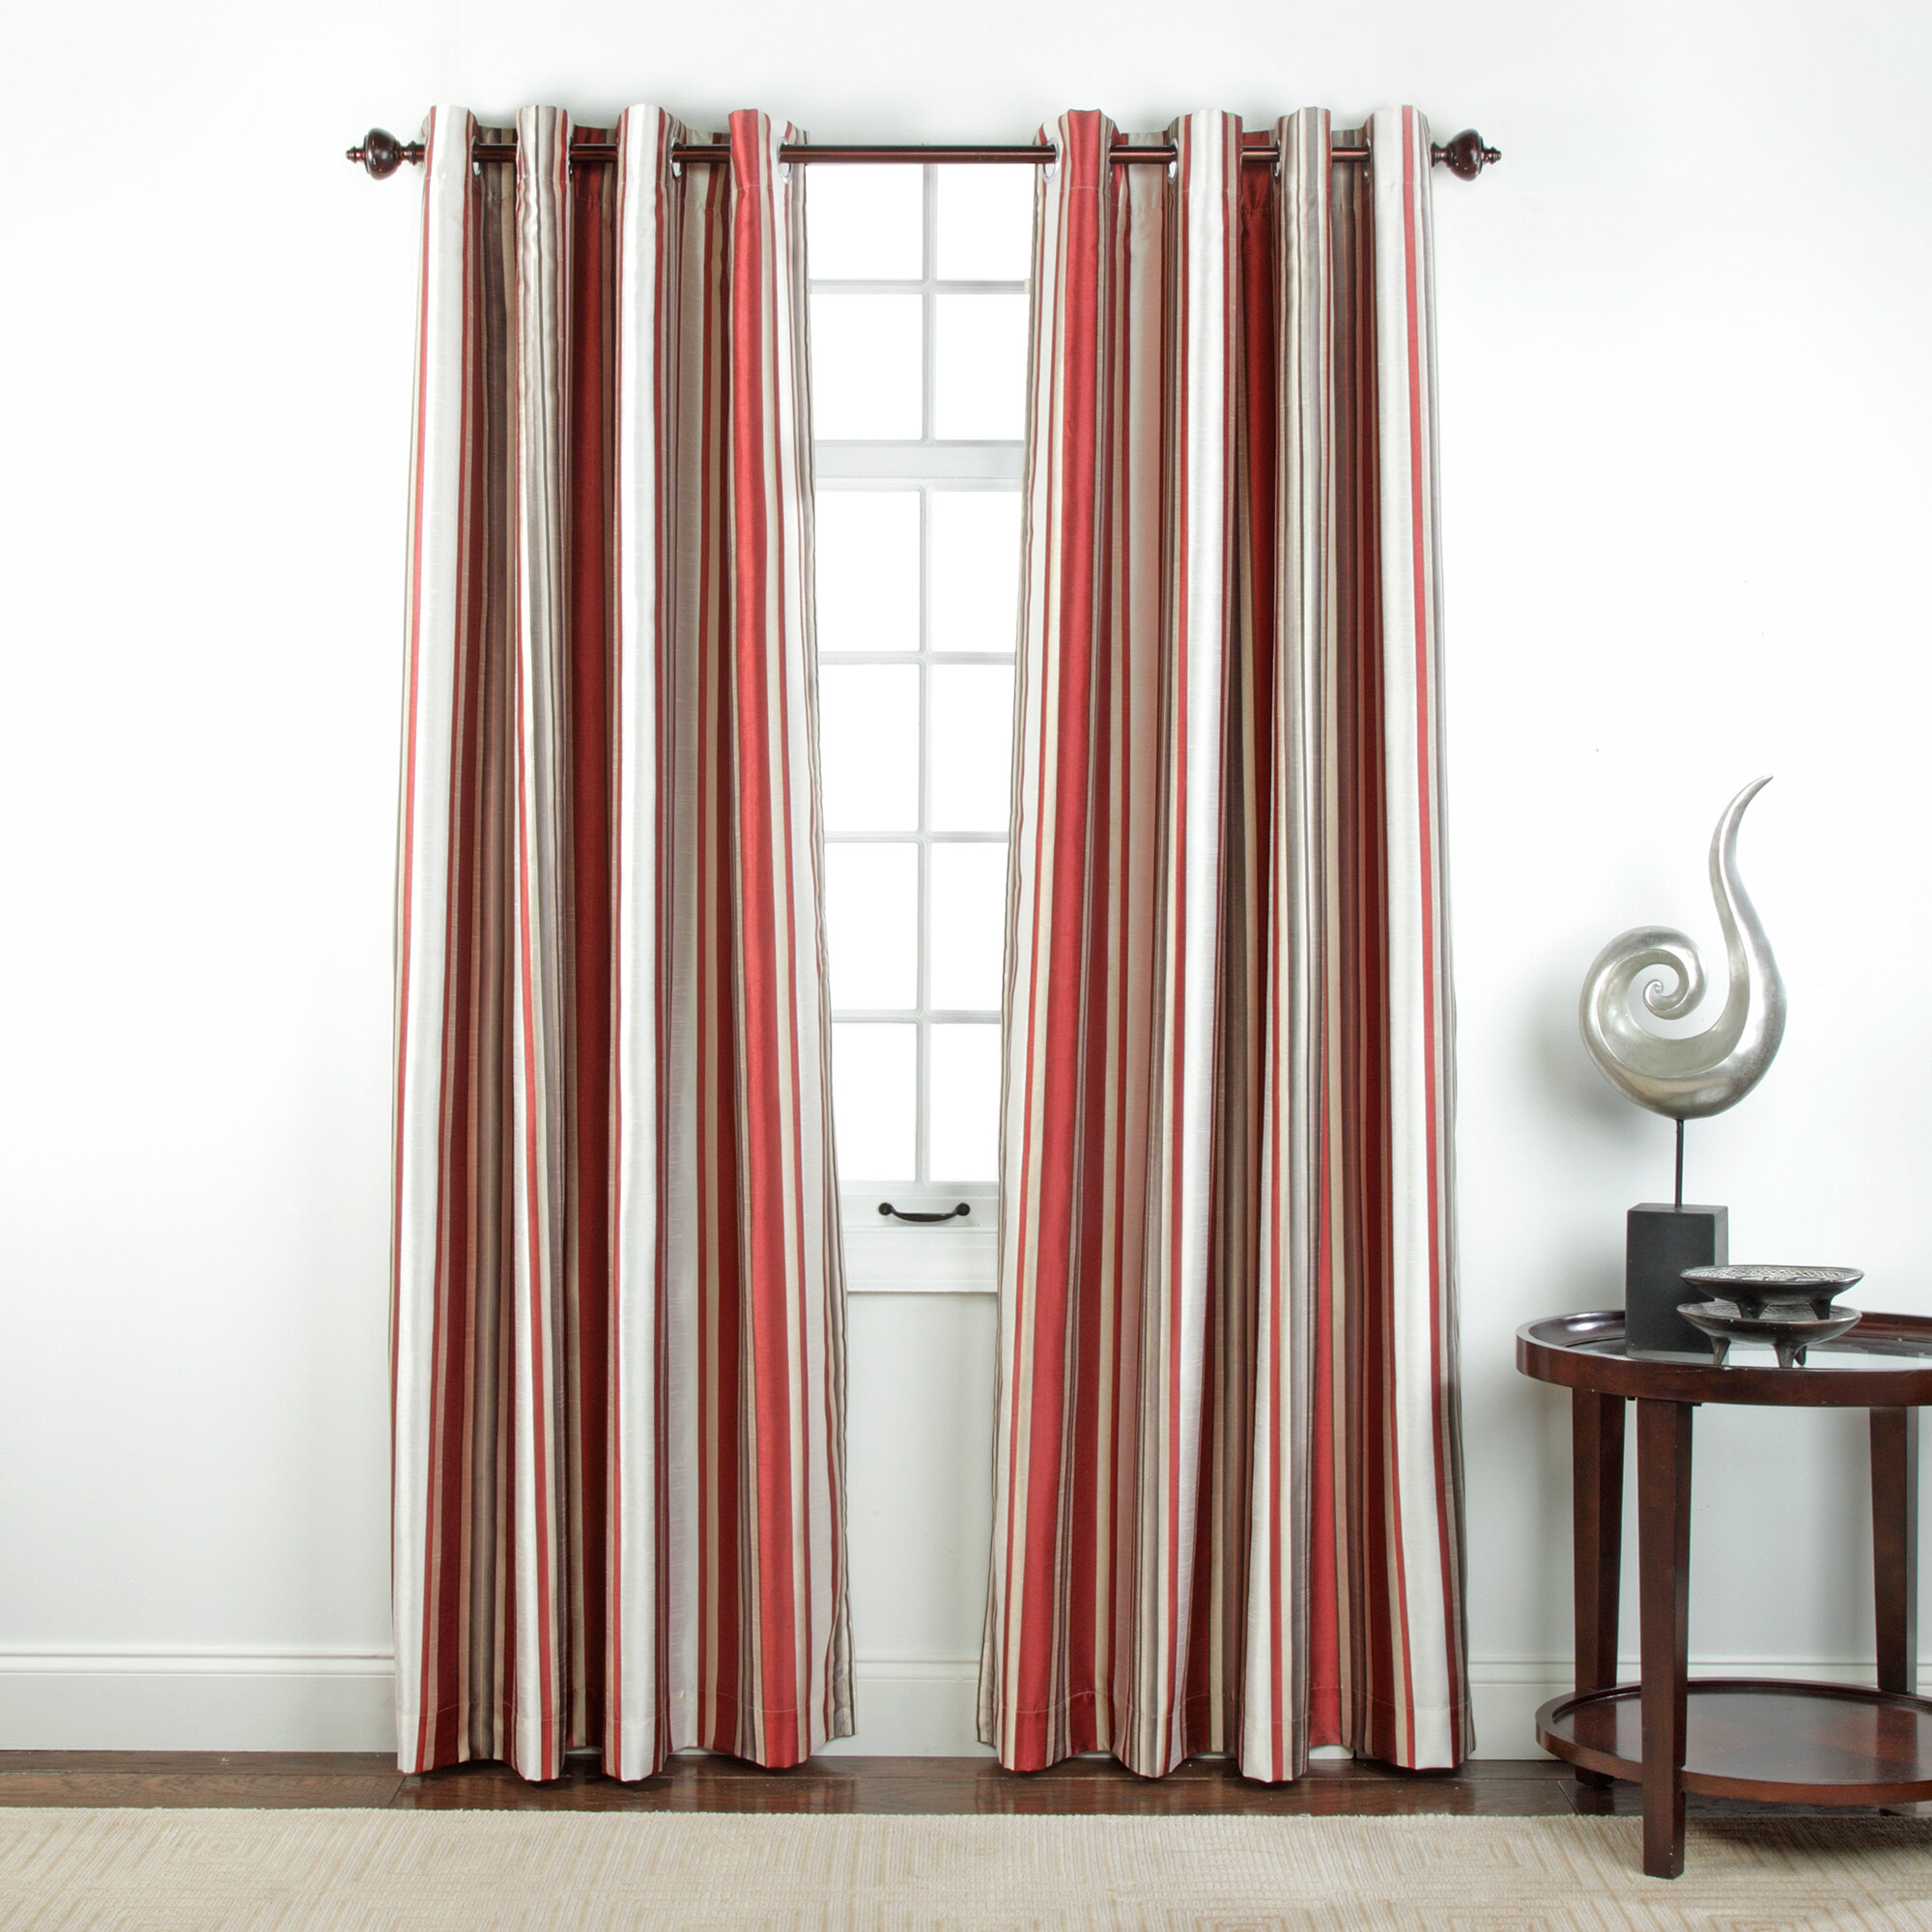 panel striped blackout dp set of curtain decor com darkening lush room kitchen x black amazon home window curtains pair wilbur stripe inch